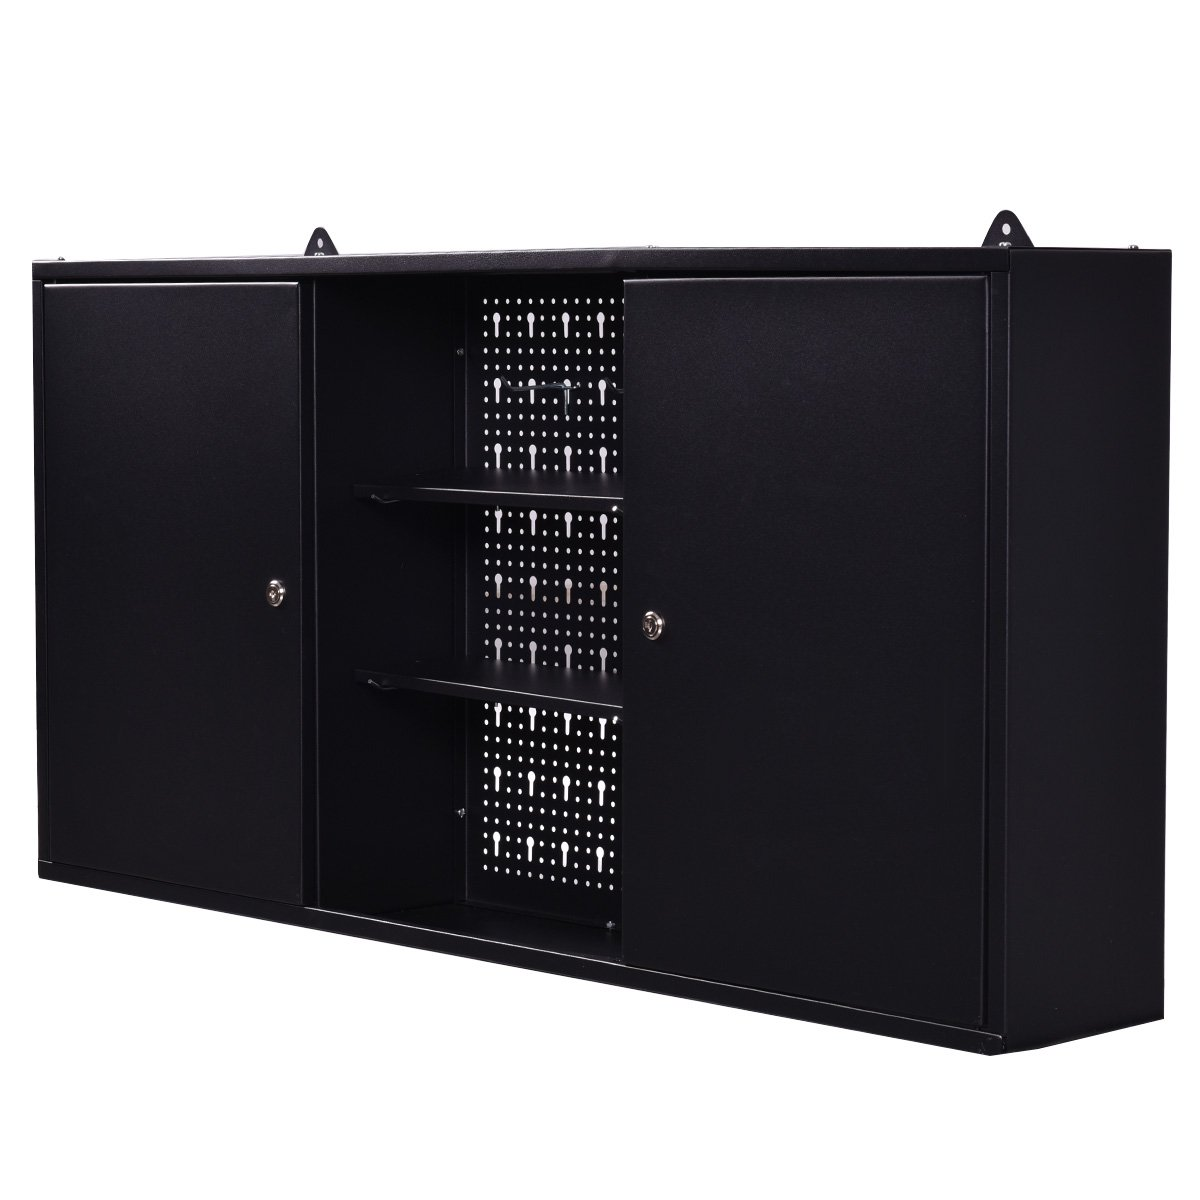 The GoPlus Wall Mounted Hanging Tool Cabinet